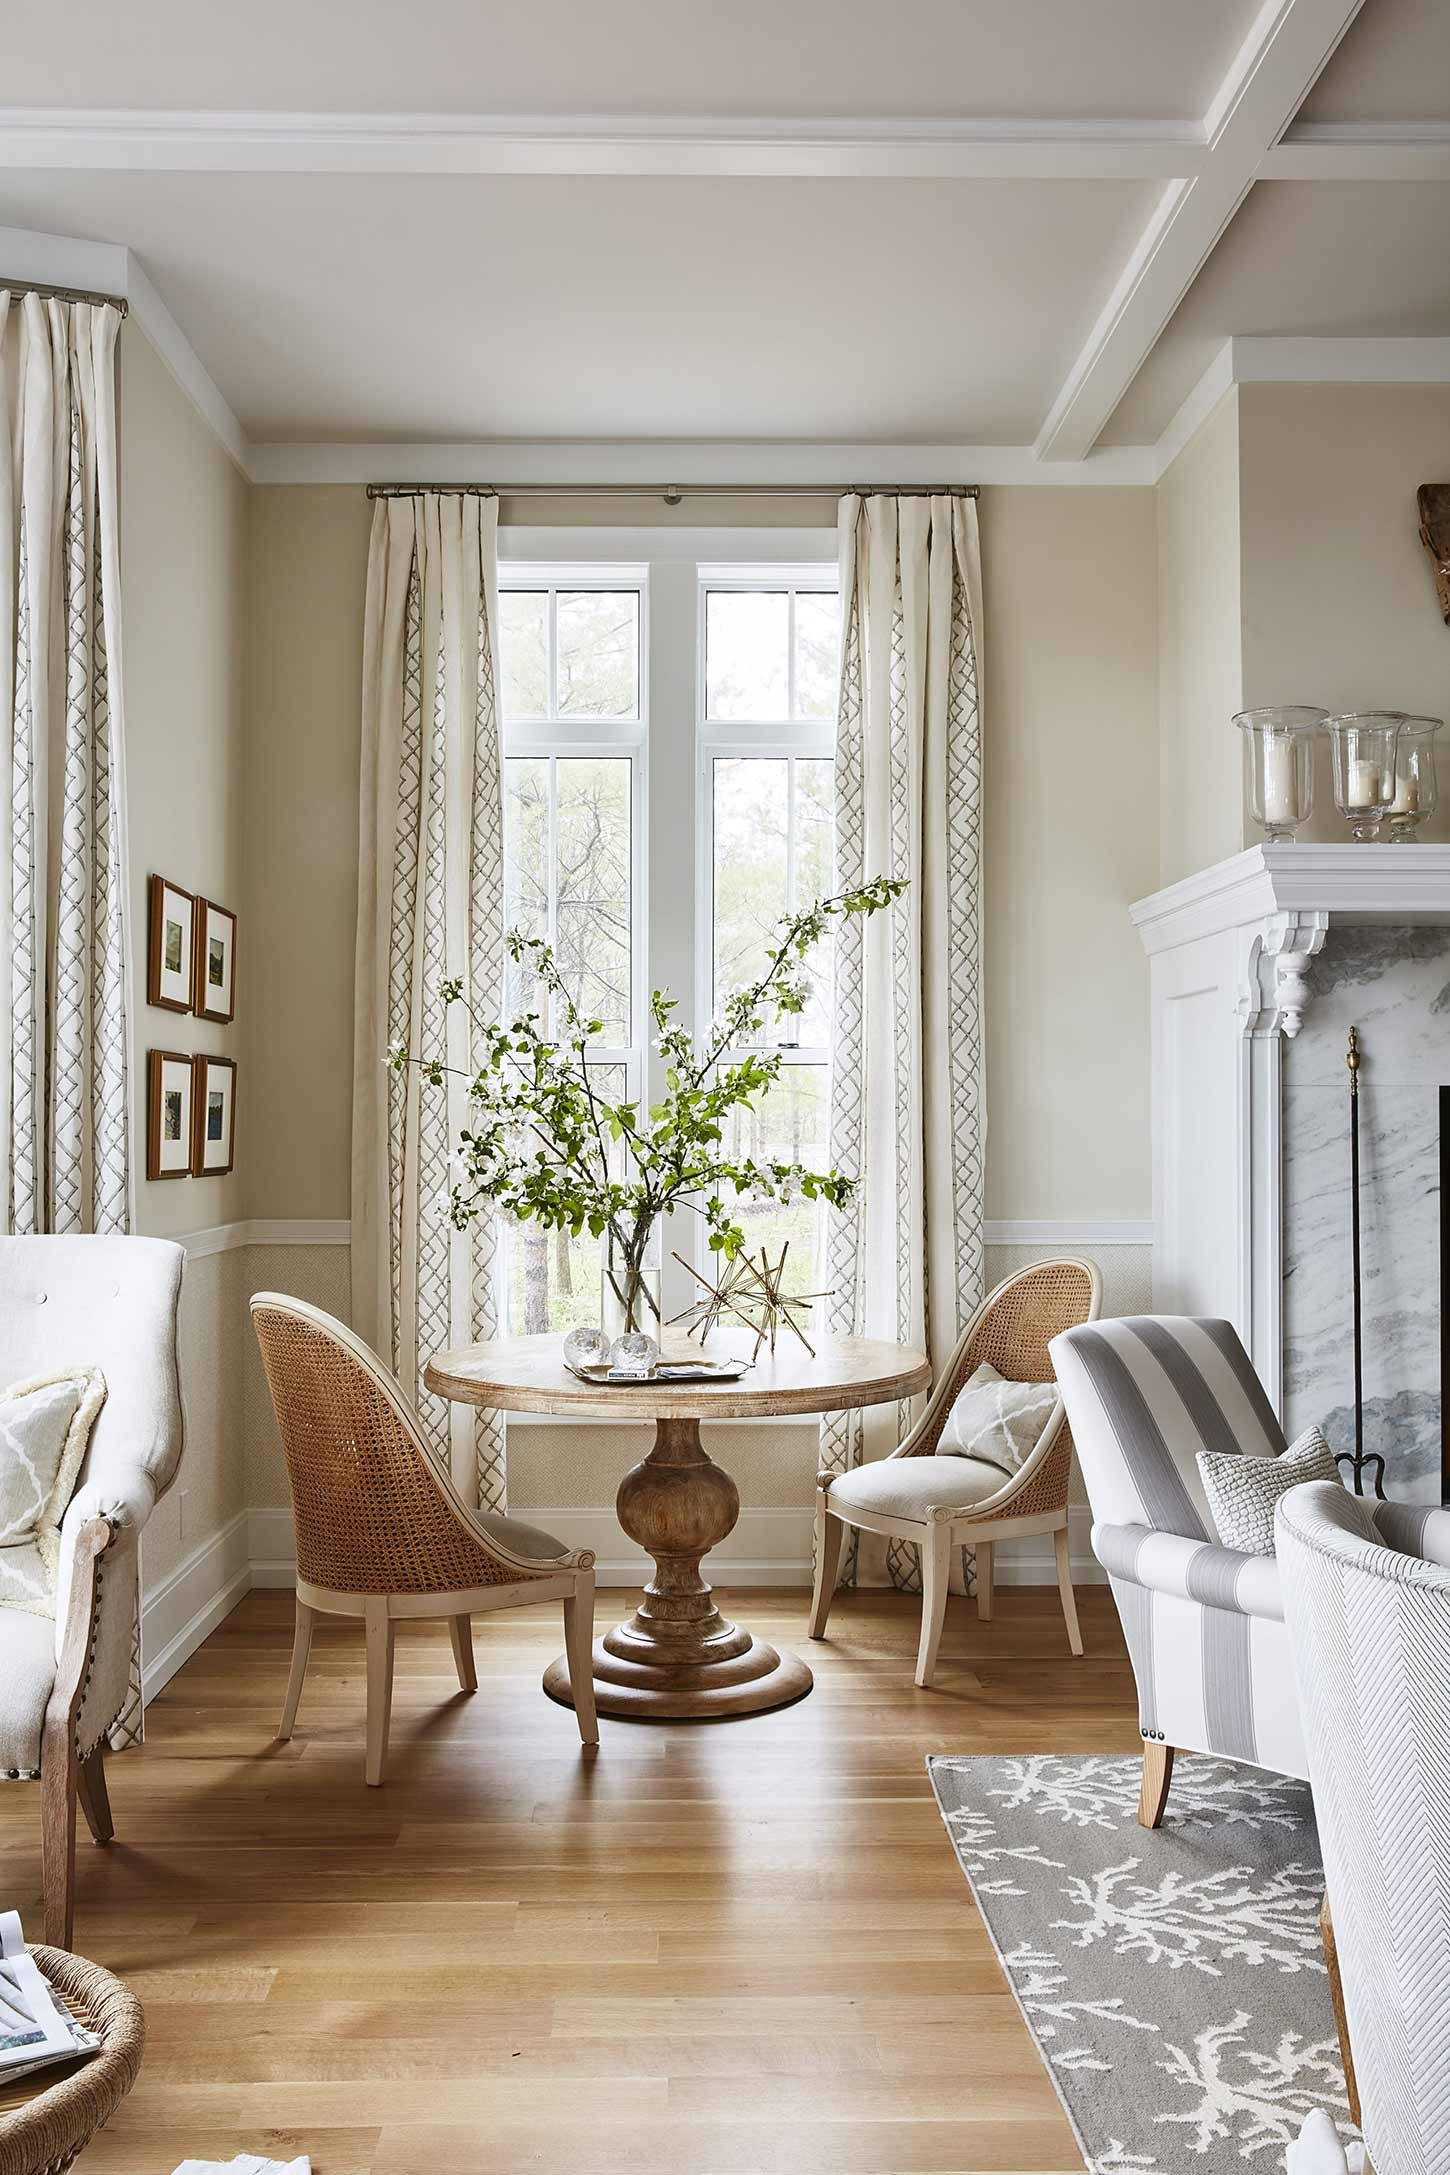 Decor Recipes for a Classic Living Room & Family Room - Hello Lovely